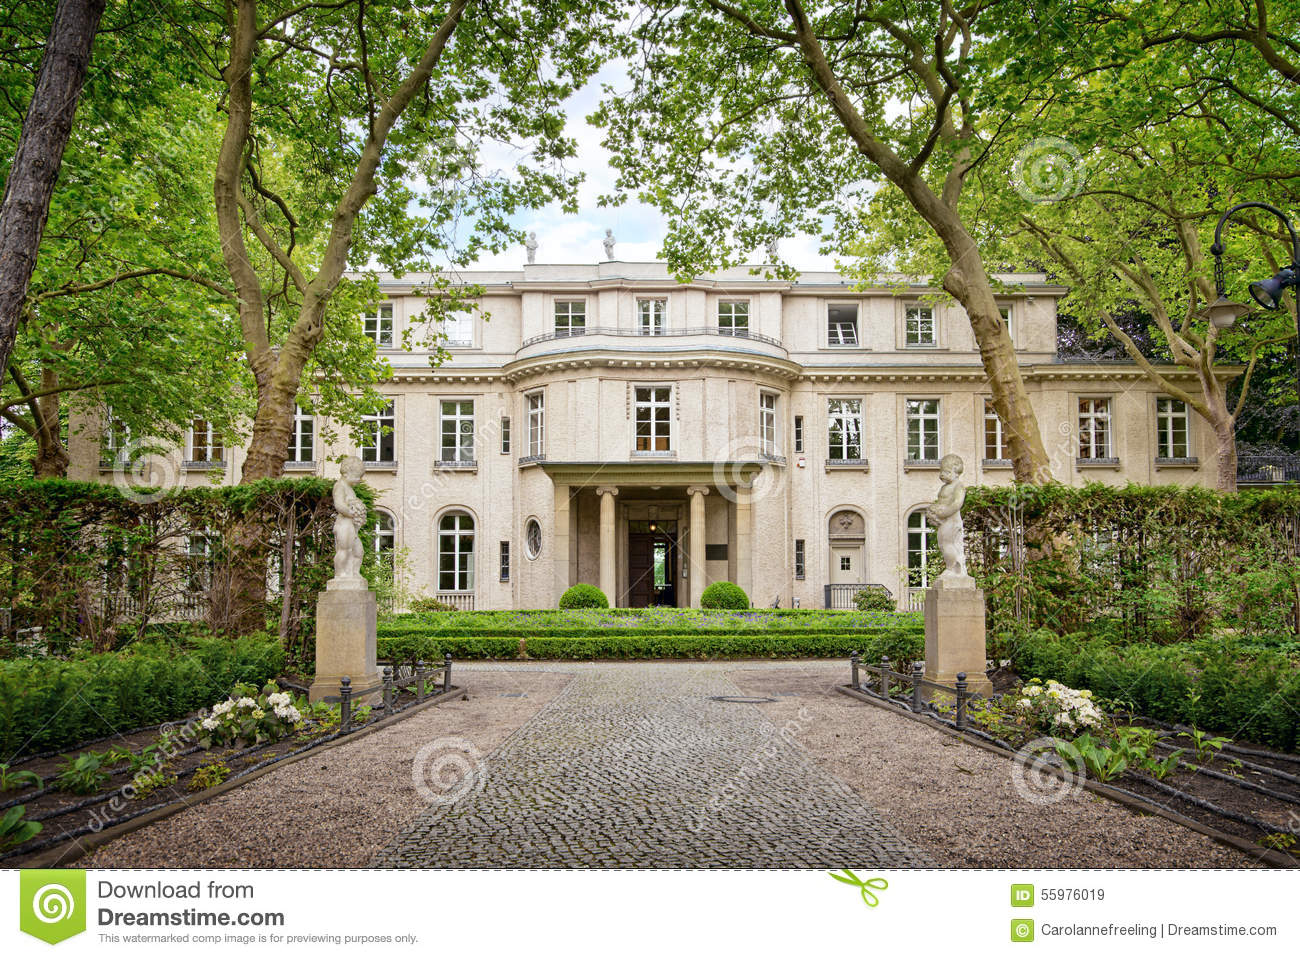 House of the wannsee conference in berlin germany stock photo image